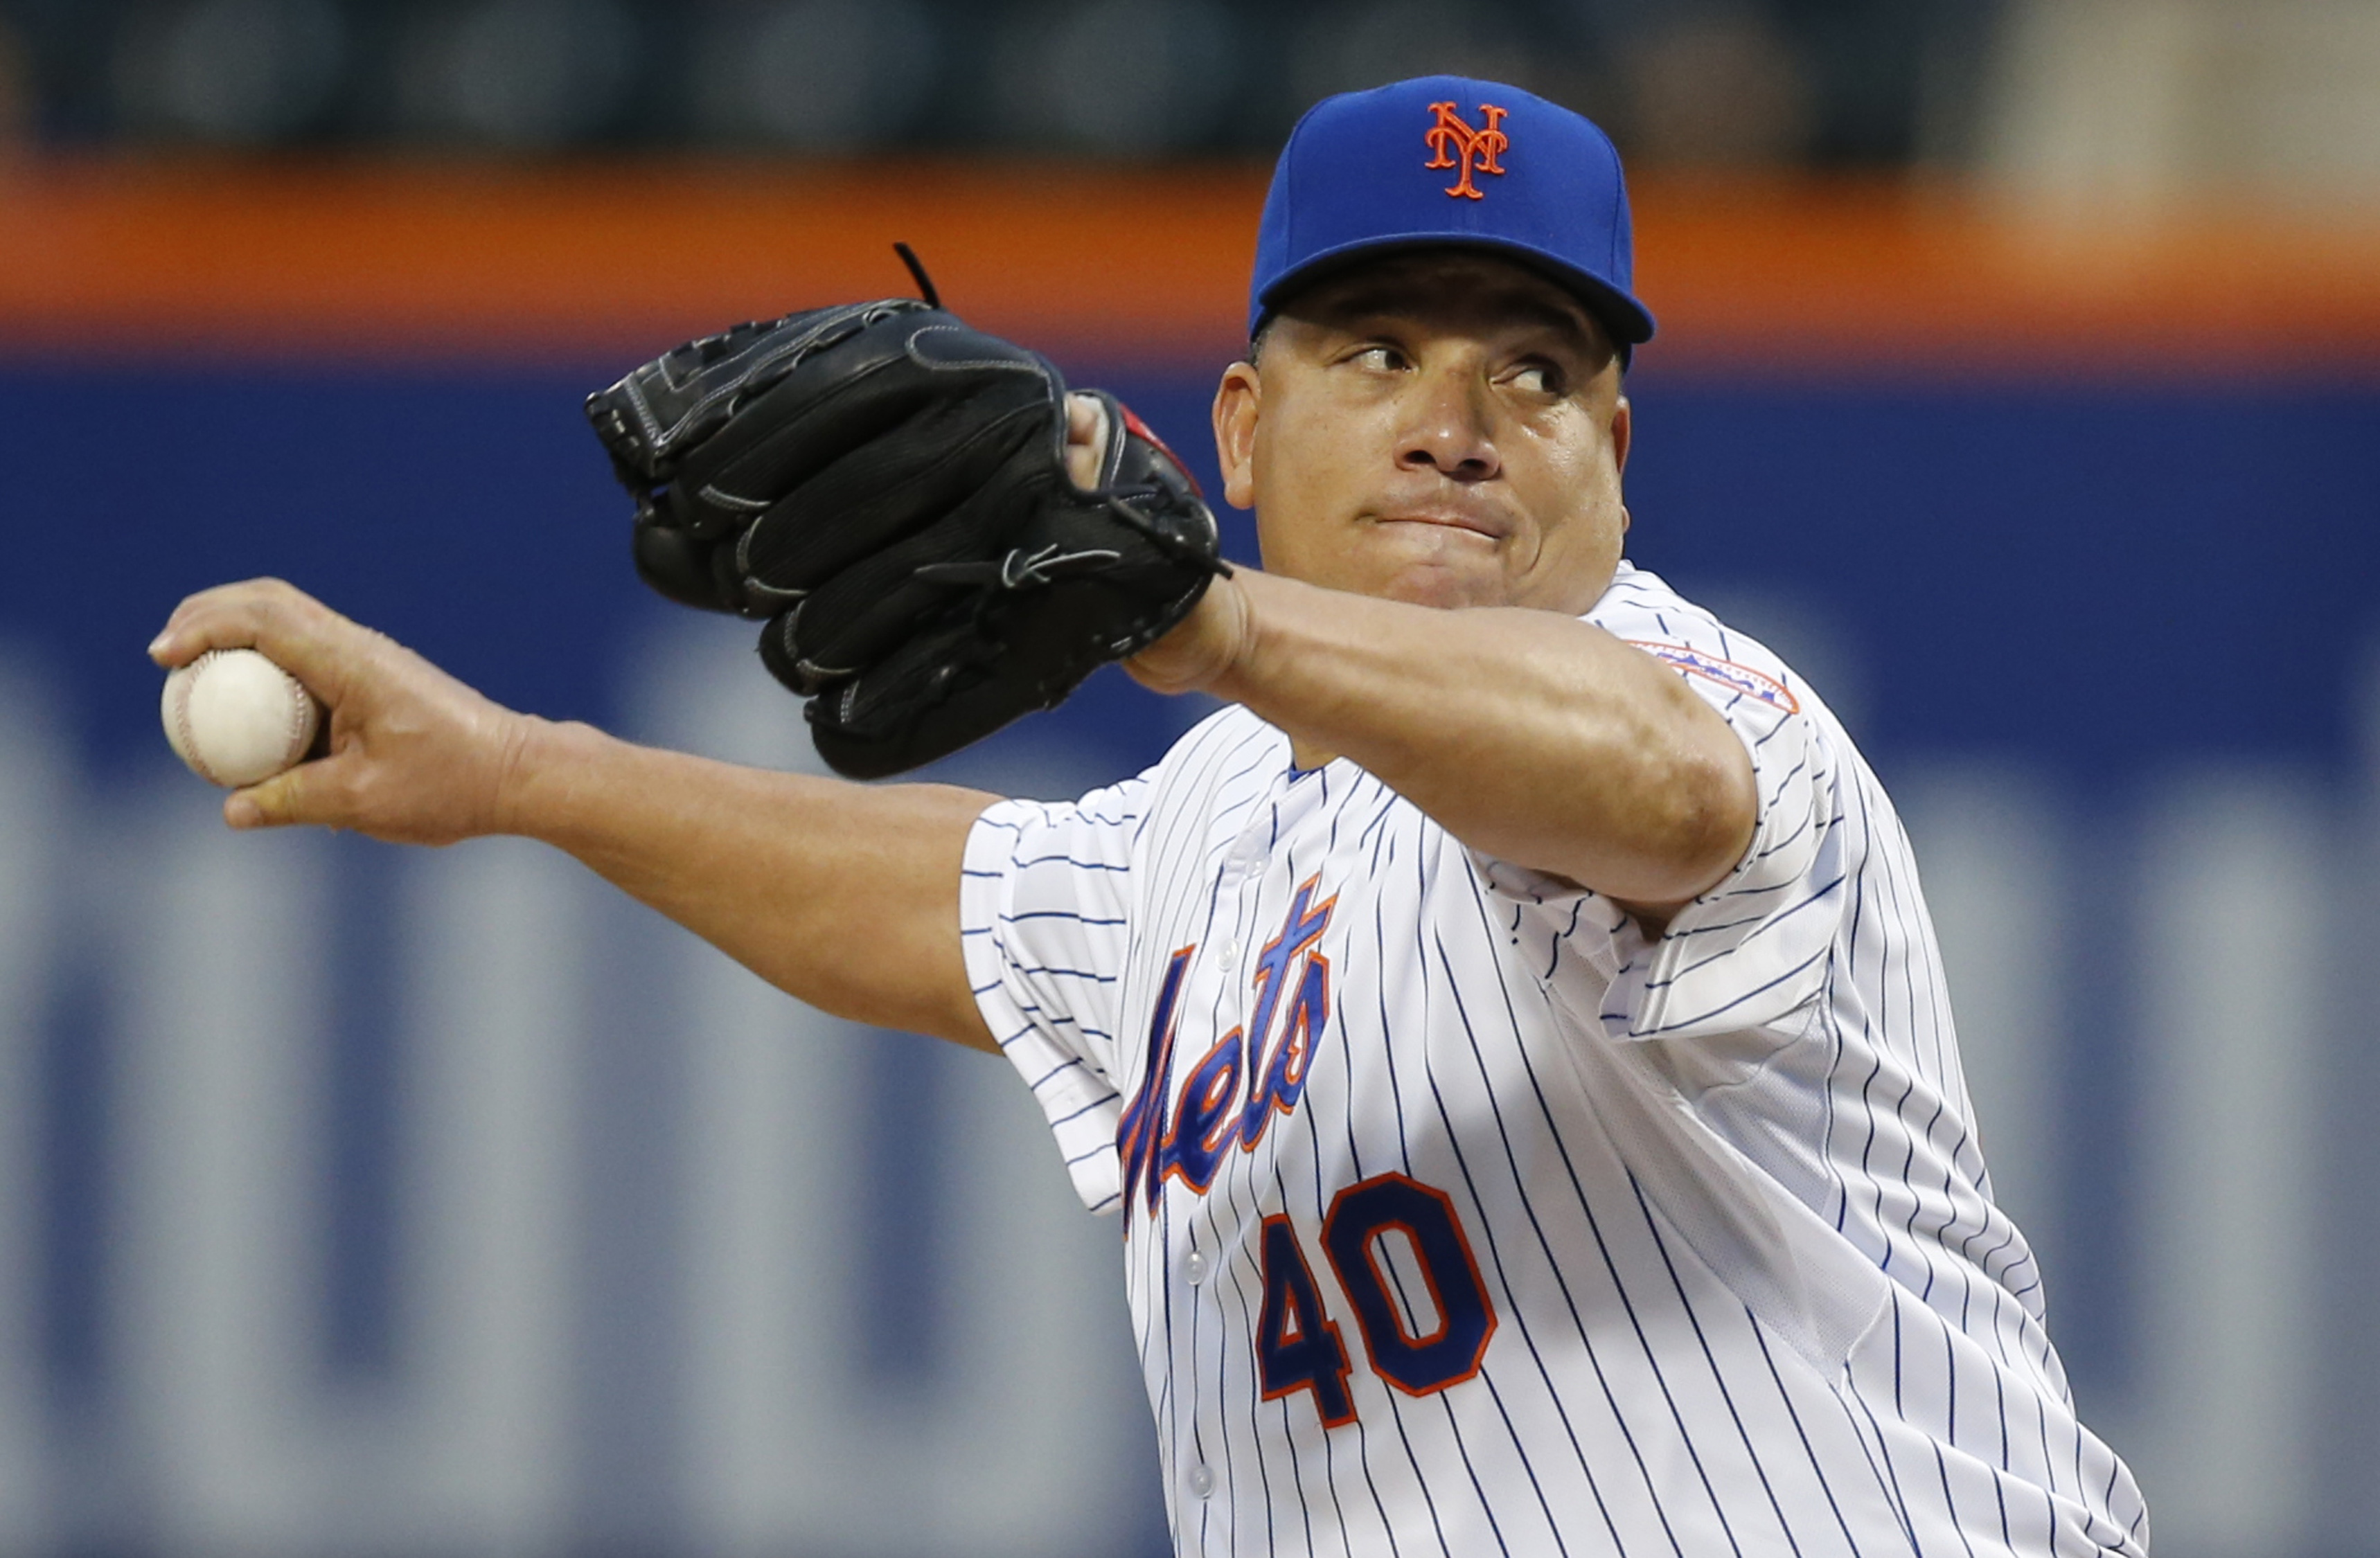 New York Mets starting pitcher Bartolo Colon delivers in the first inning of a baseball game against the Baltimore Orioles in New York, Tuesday, May 5, 2015. (AP Photo/Kathy Willens)